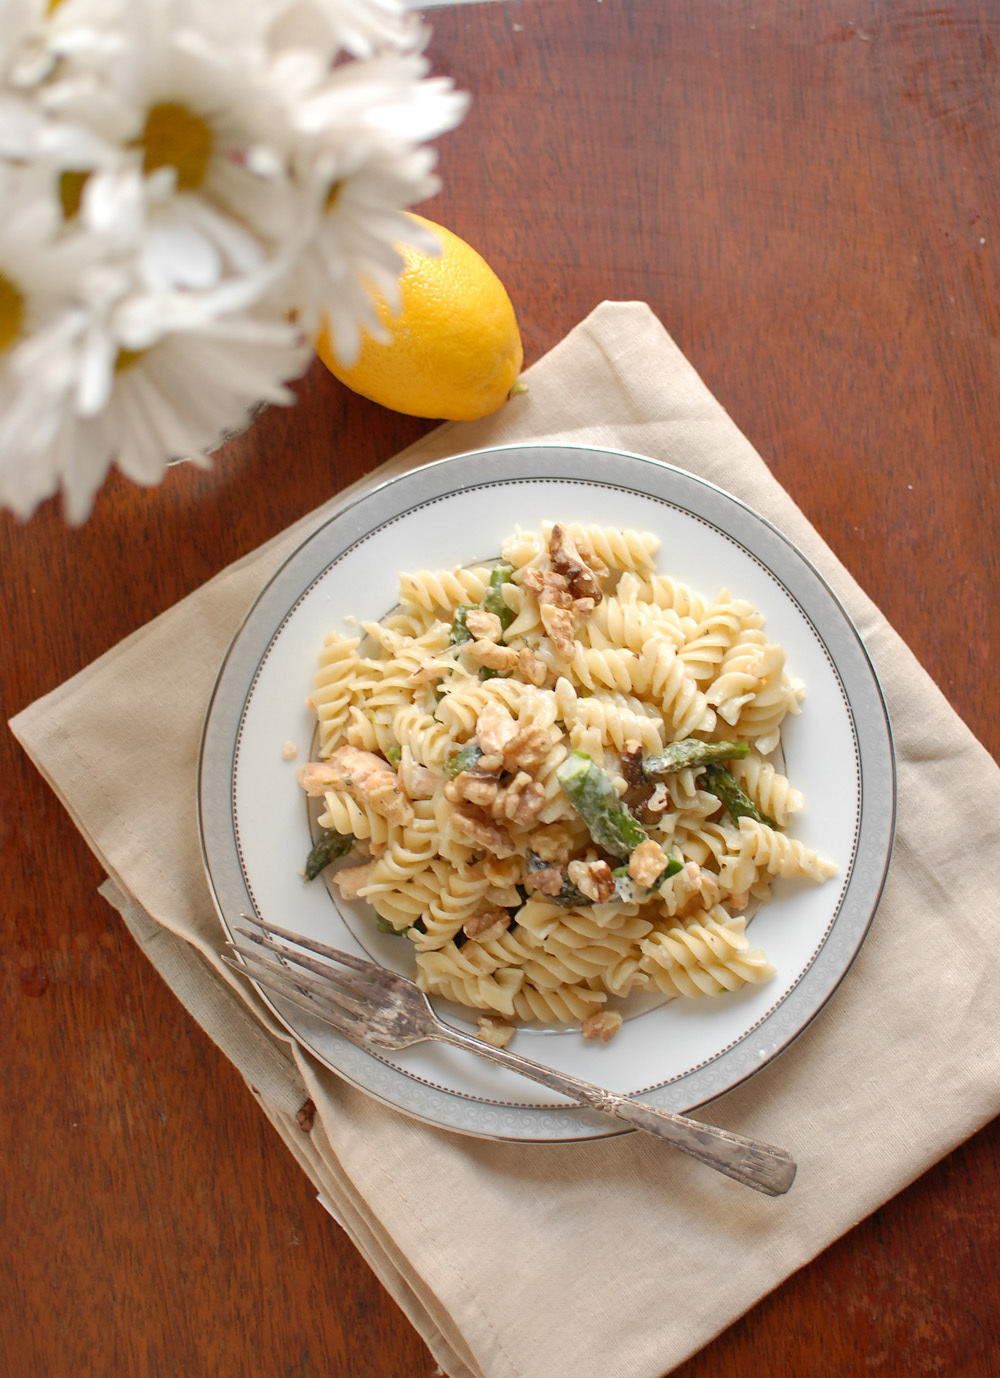 Salmon And Asparagus Pasta With Walnuts